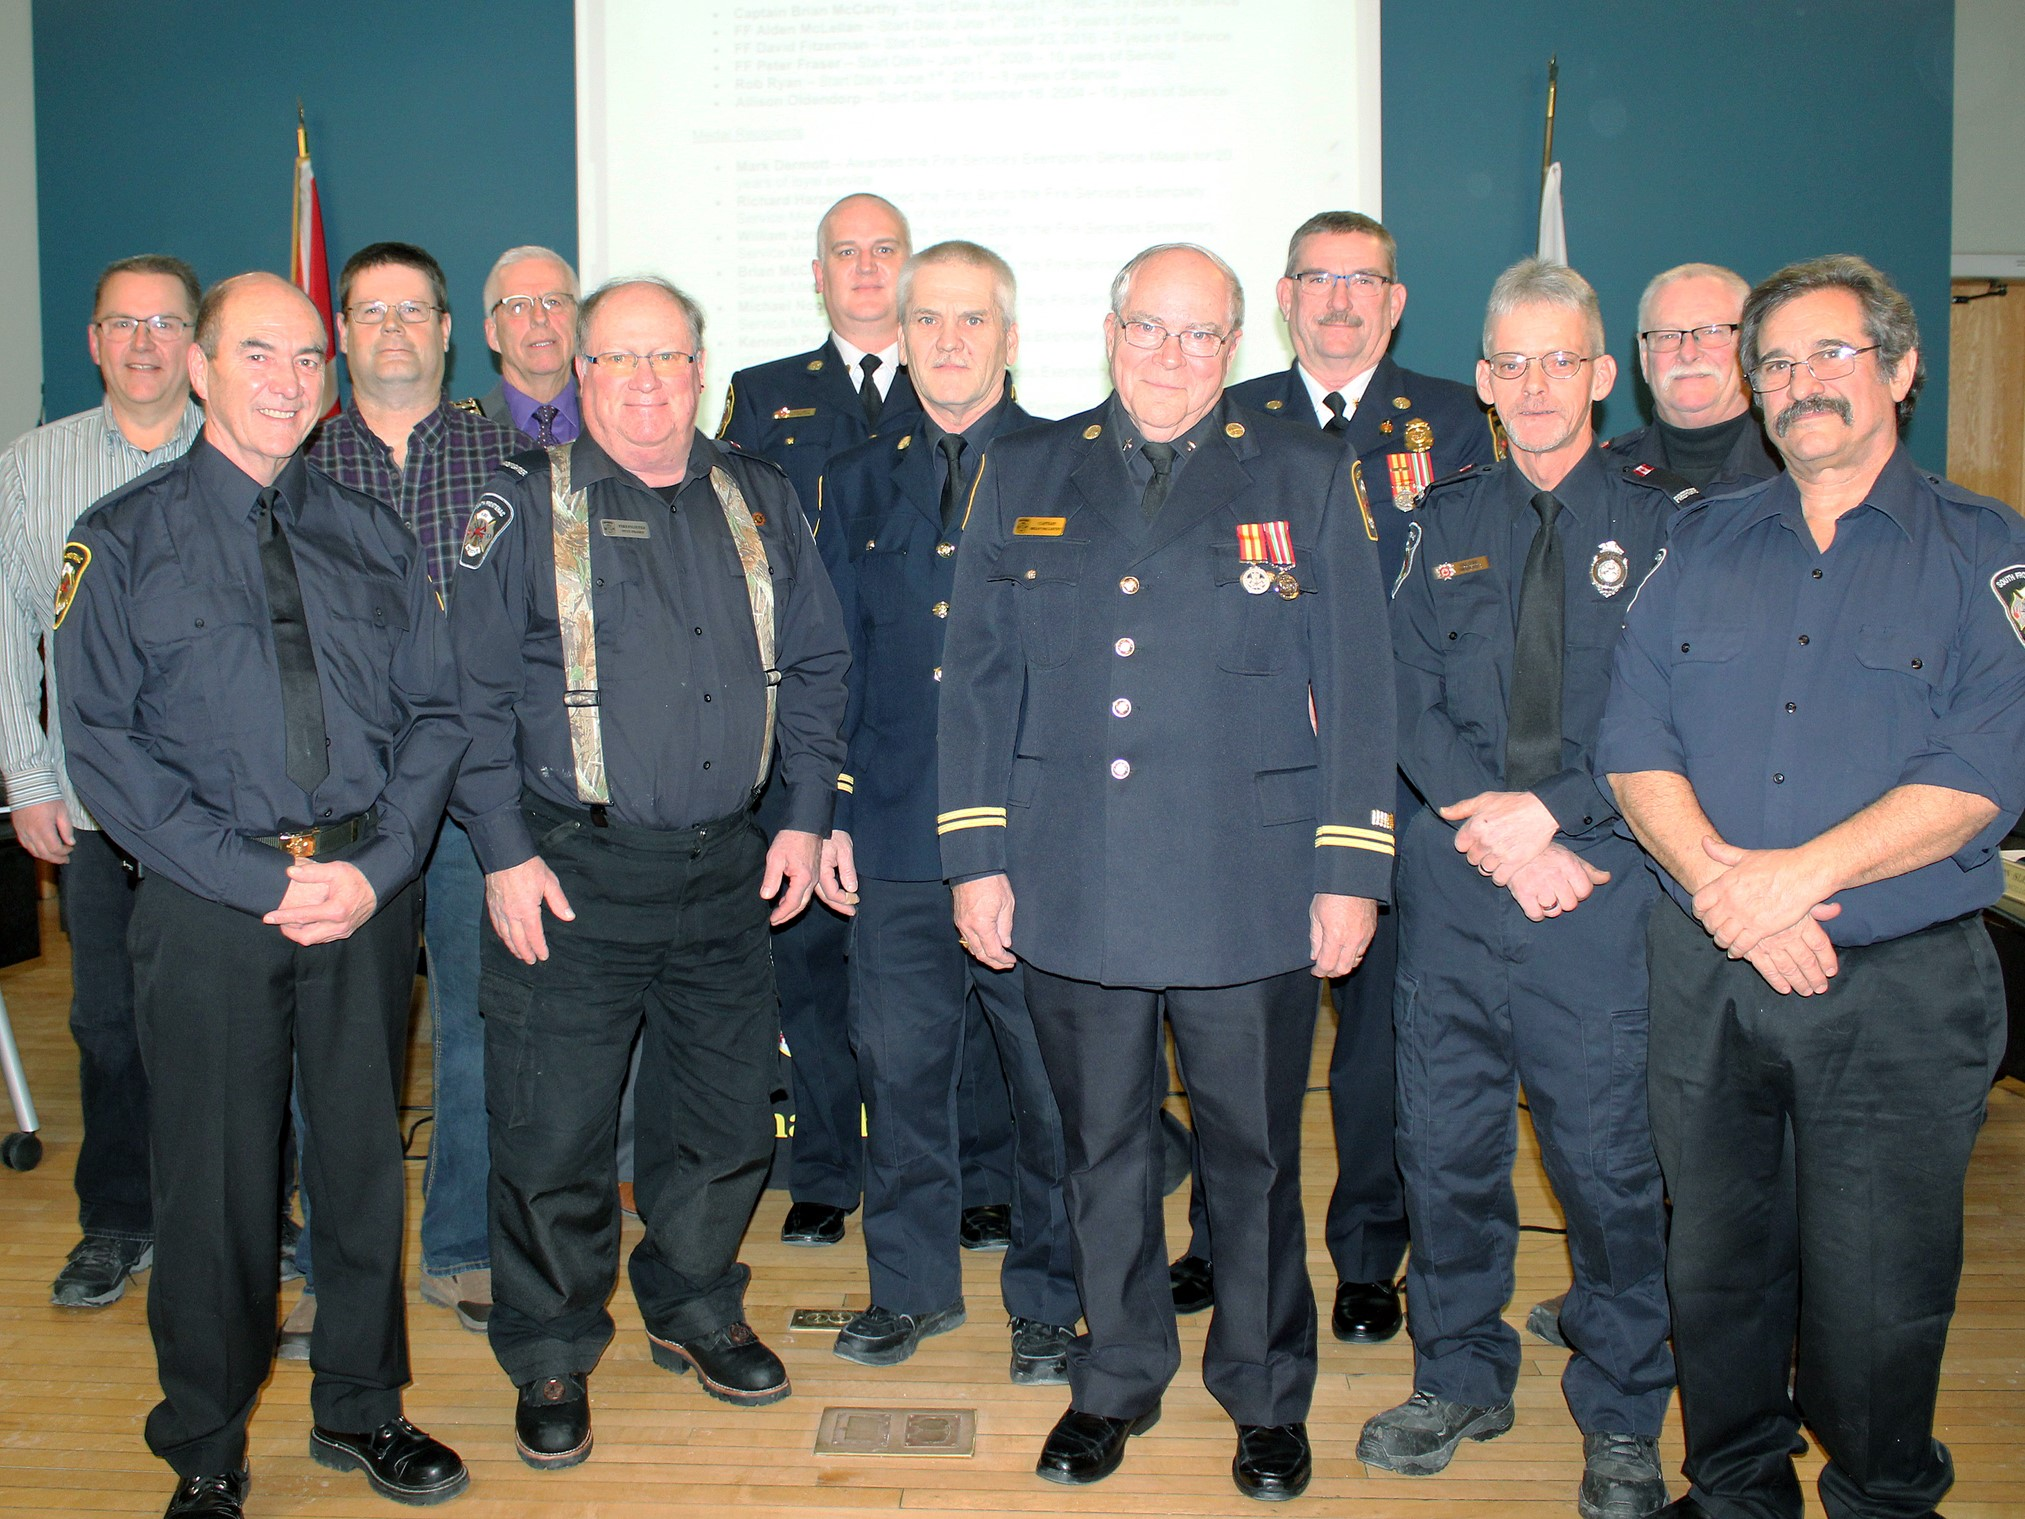 Township of South Frontenac - Fire Honourees